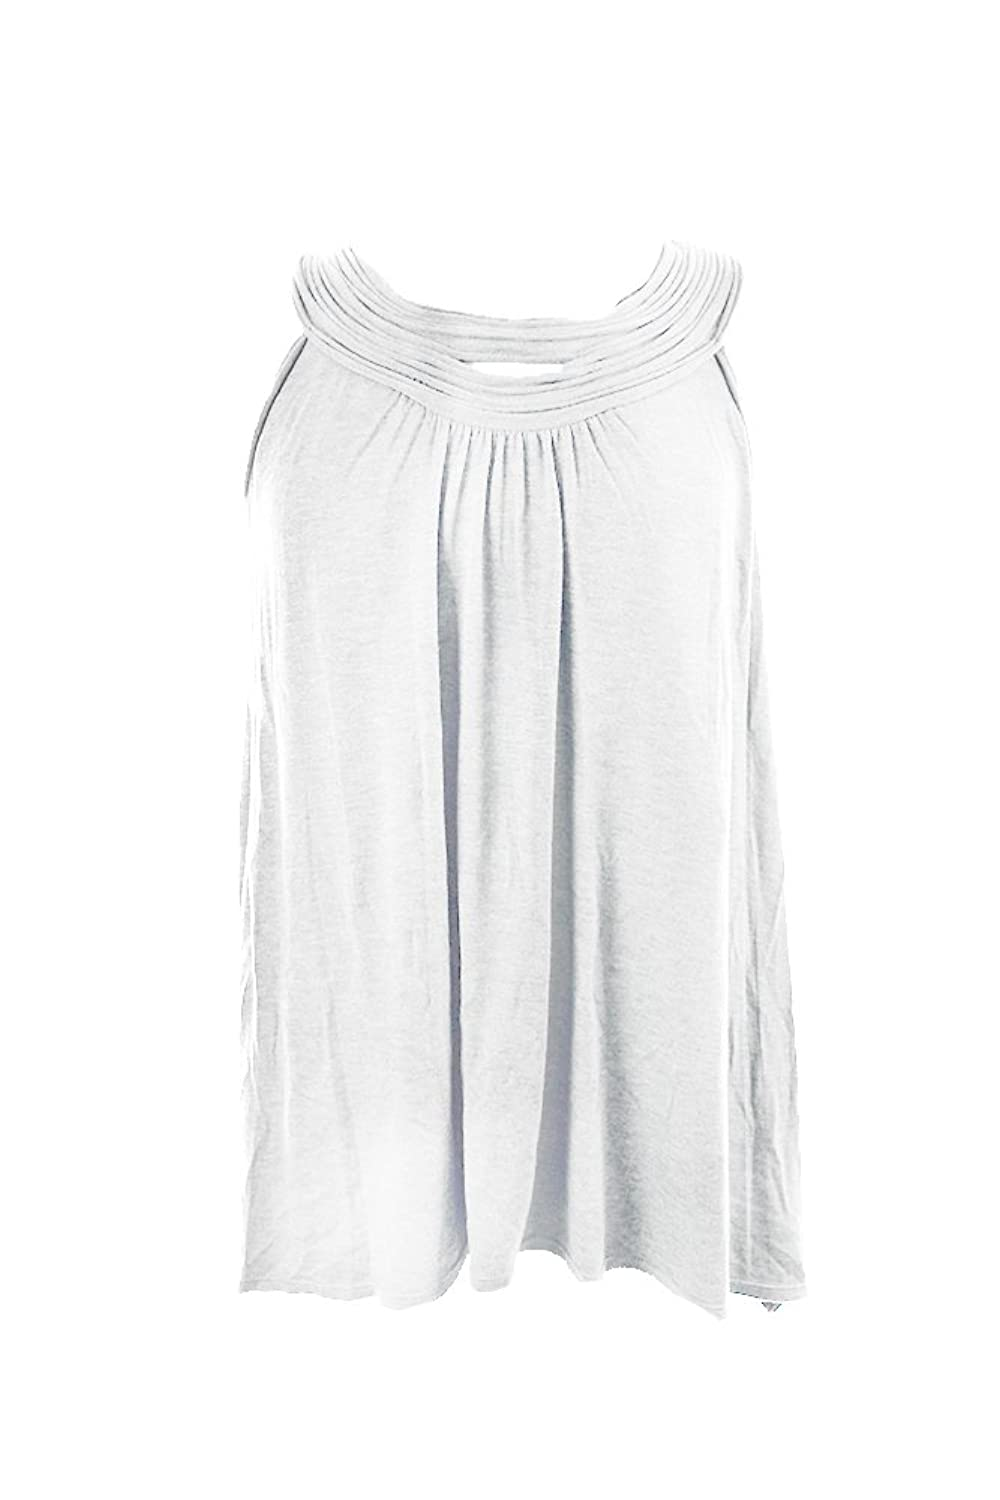 Studio M White Sleeveless Textured Neck Tank Top M